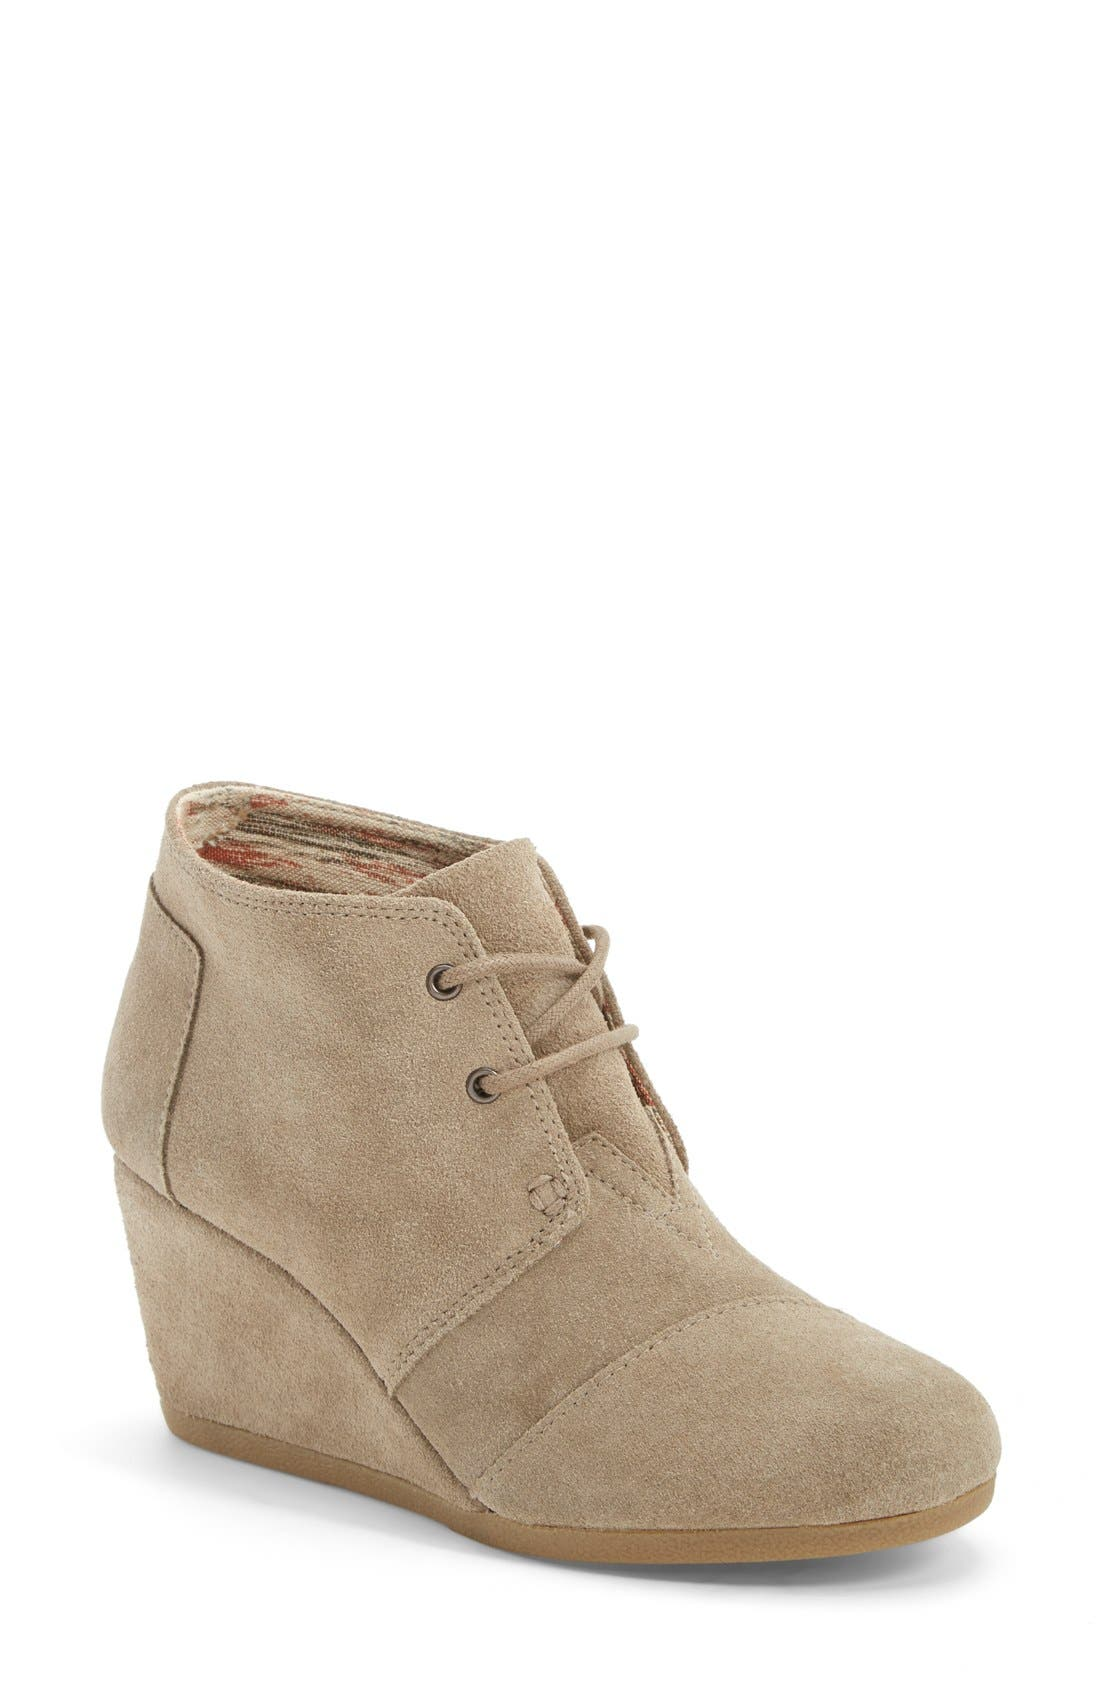 AN TEST TOMS 'Desert' Wedge Bootie, Main, color, 250